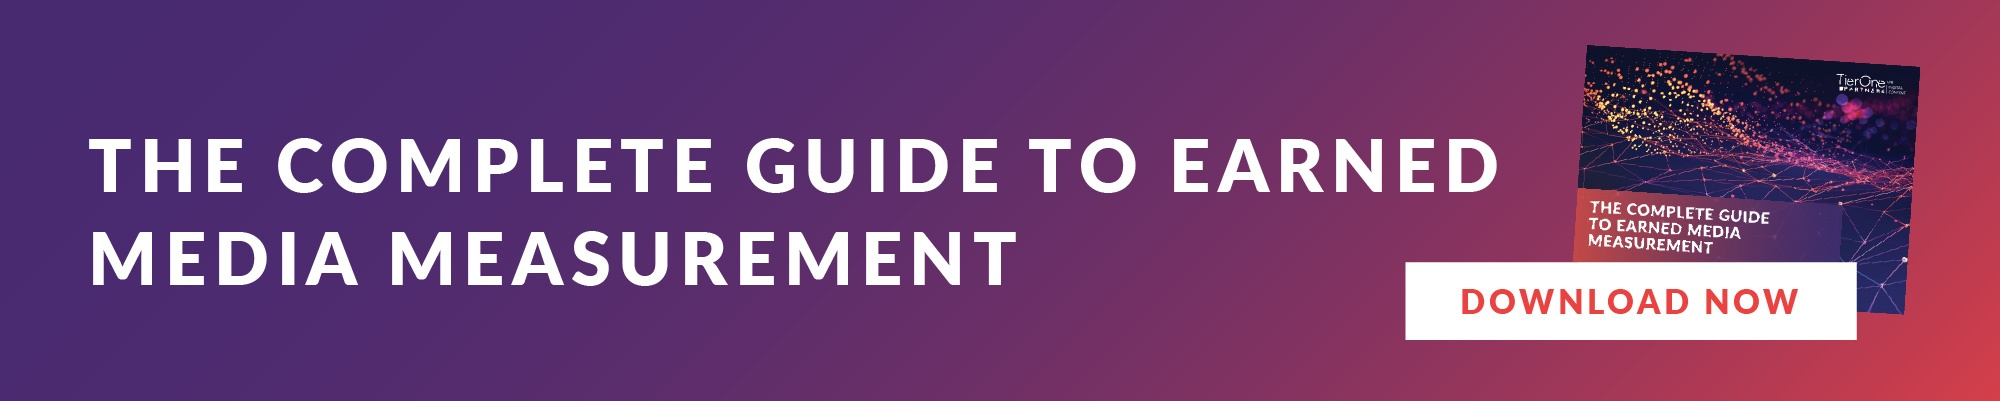 The complete guide to earned media measurement - download now.